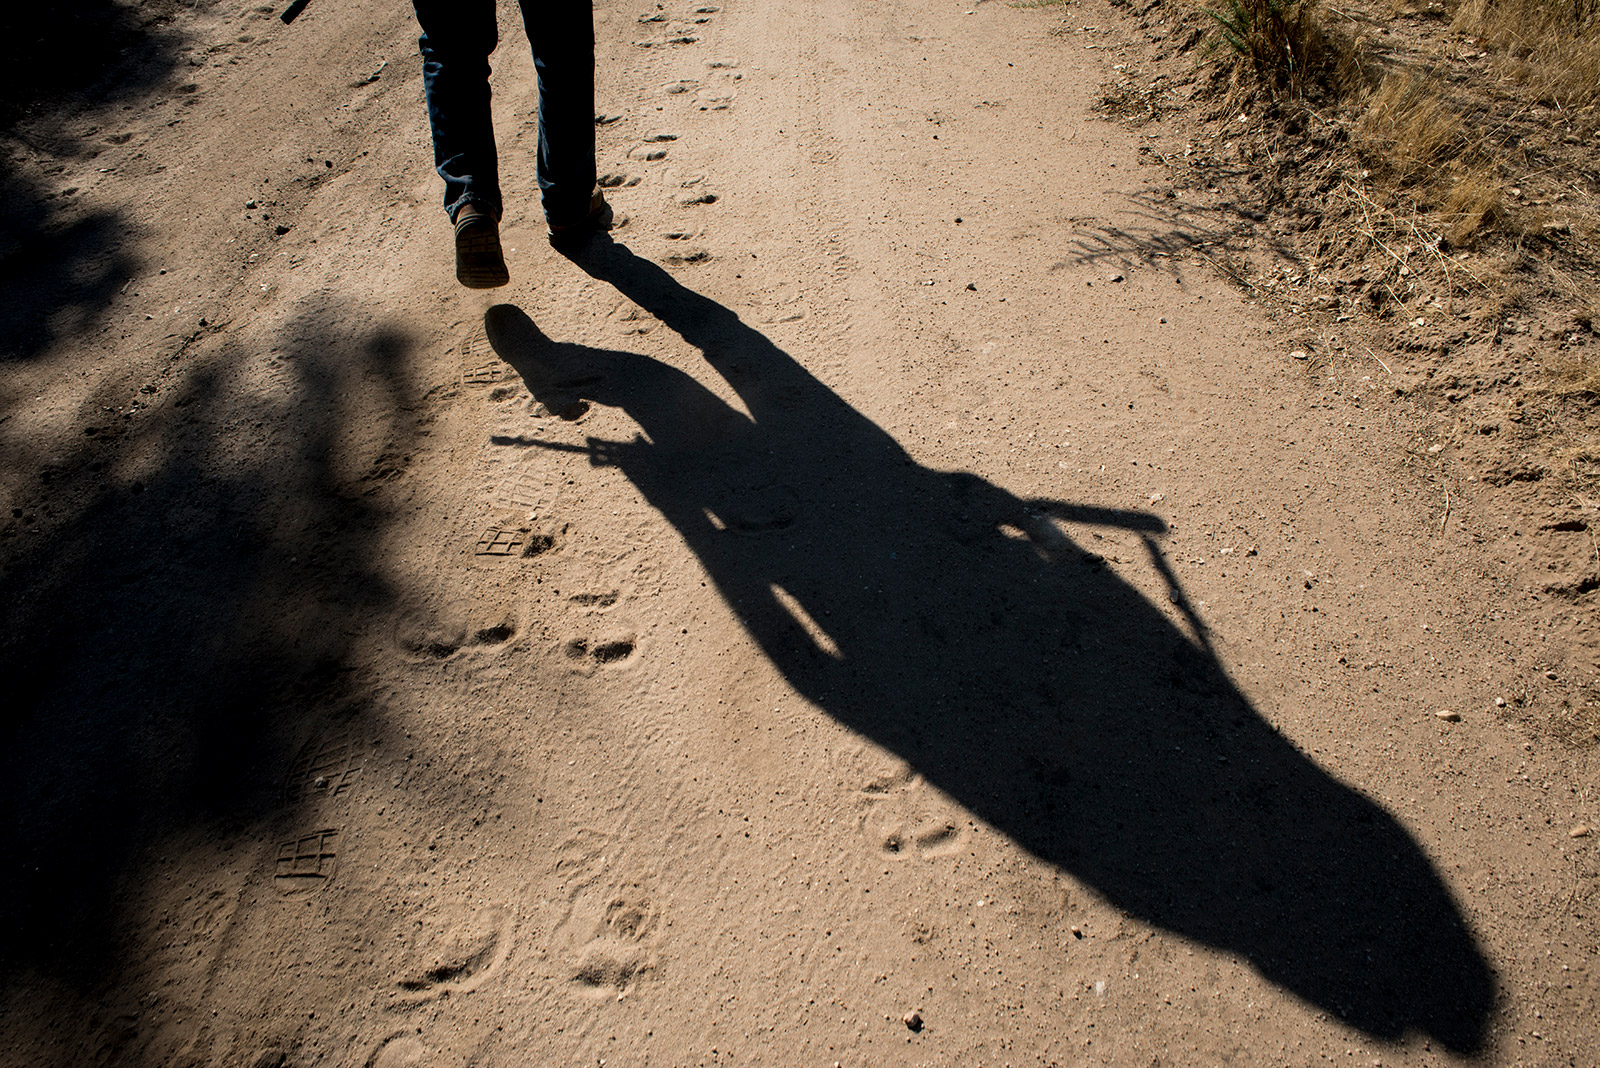 The silhouette of Bob Maupin and his AR-10, or ArmaLite Rifle, extend along a dirt road that leads from his Boulevard home to the U.S-Mexico border outside Boulevard in eastern San Diego County. The photo is from Aug. 30, 2017. <em>(Brandon Quester/inewsource)</em>